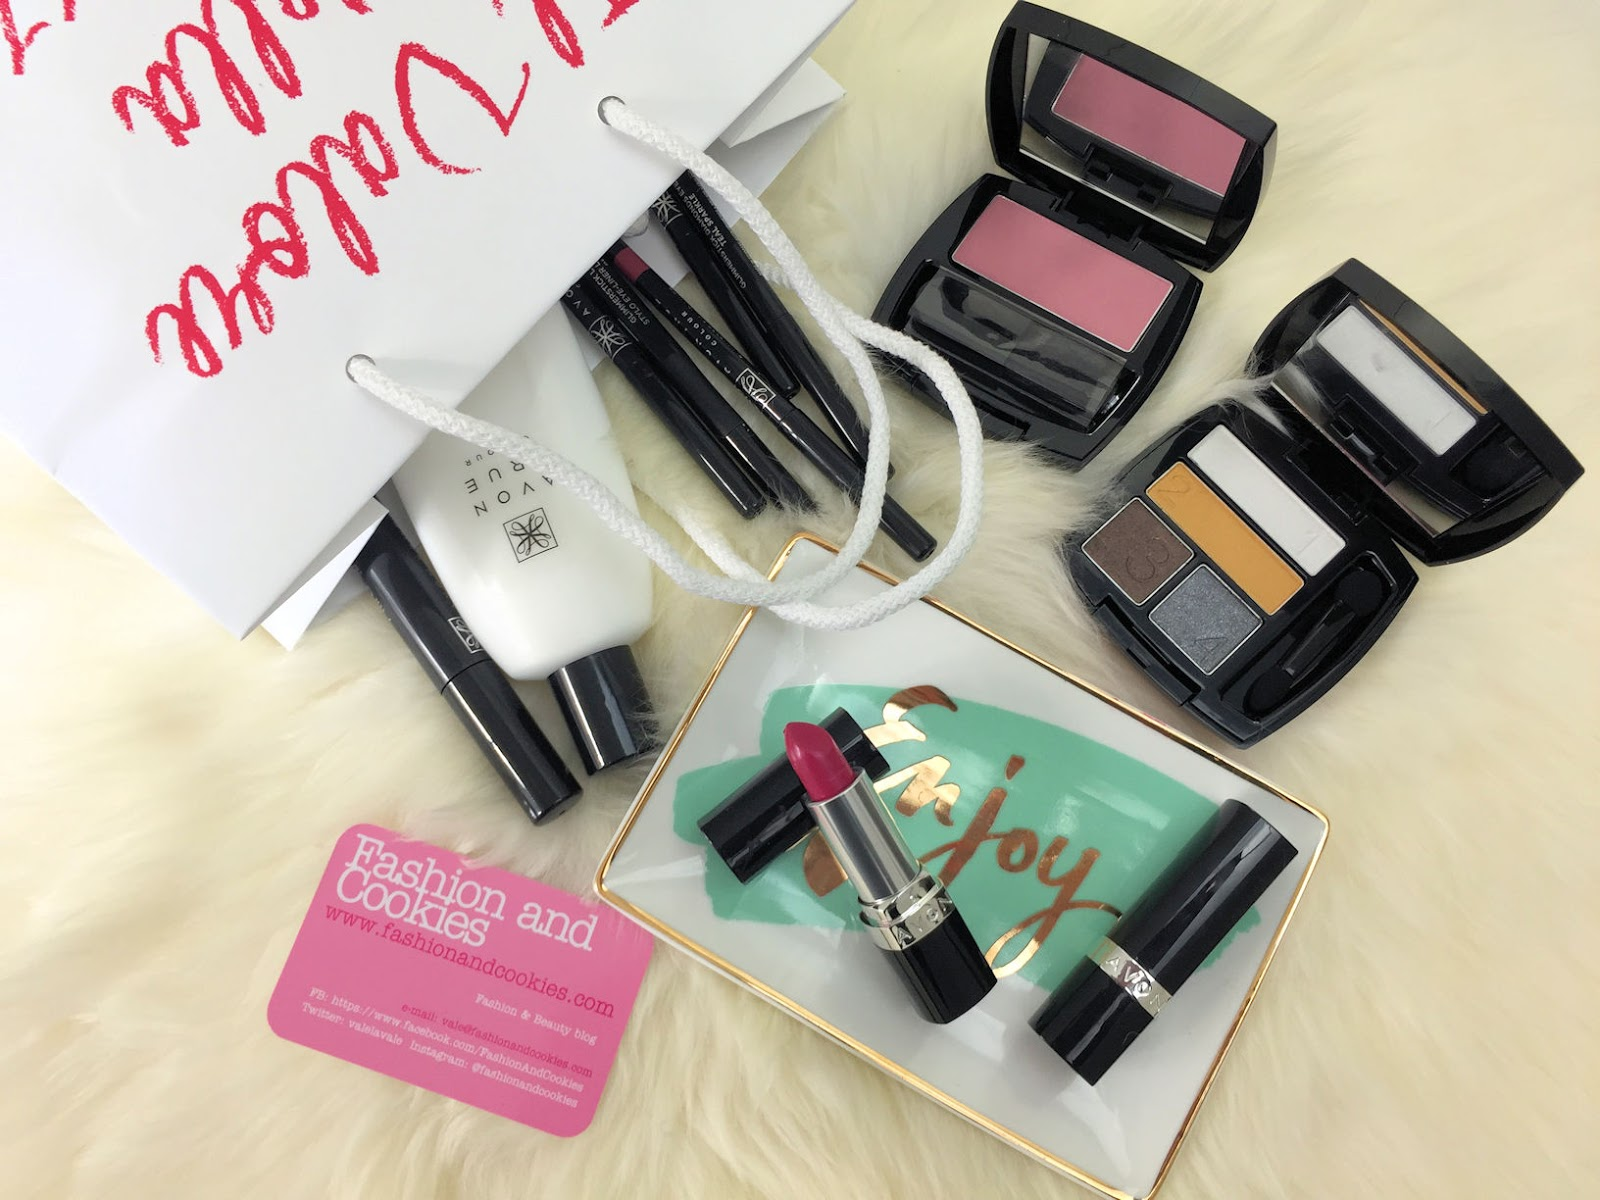 Avon #allascopertadiavon collezione makeup True Colour su Fashion and Cookies beauty blog, beauty blogger